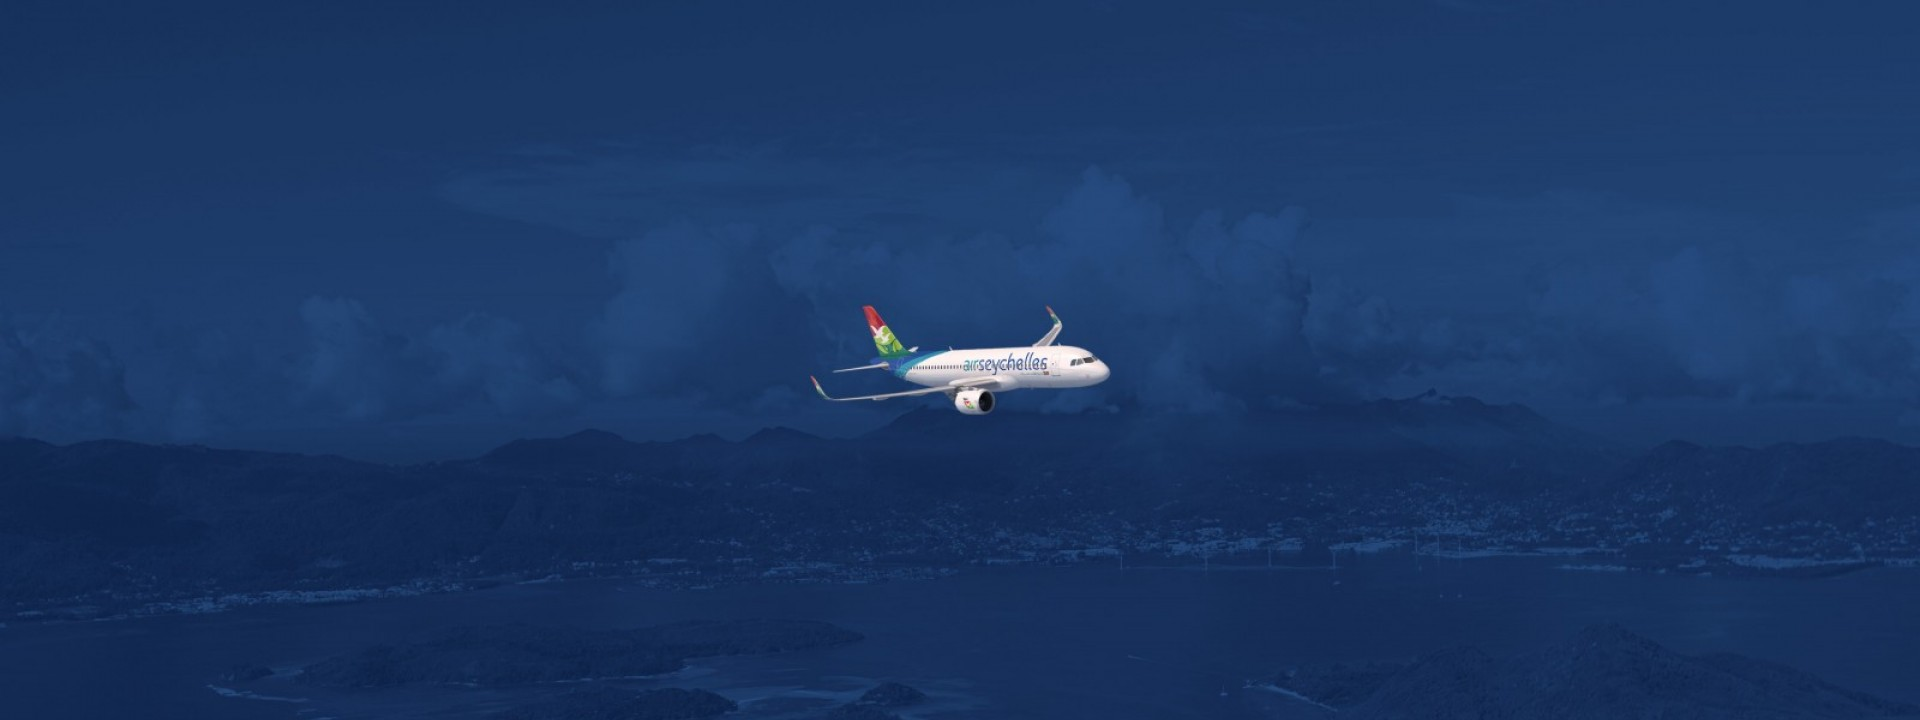 Air Seychelles repatriation flights during the COVID-19 pandemic from Seychelles